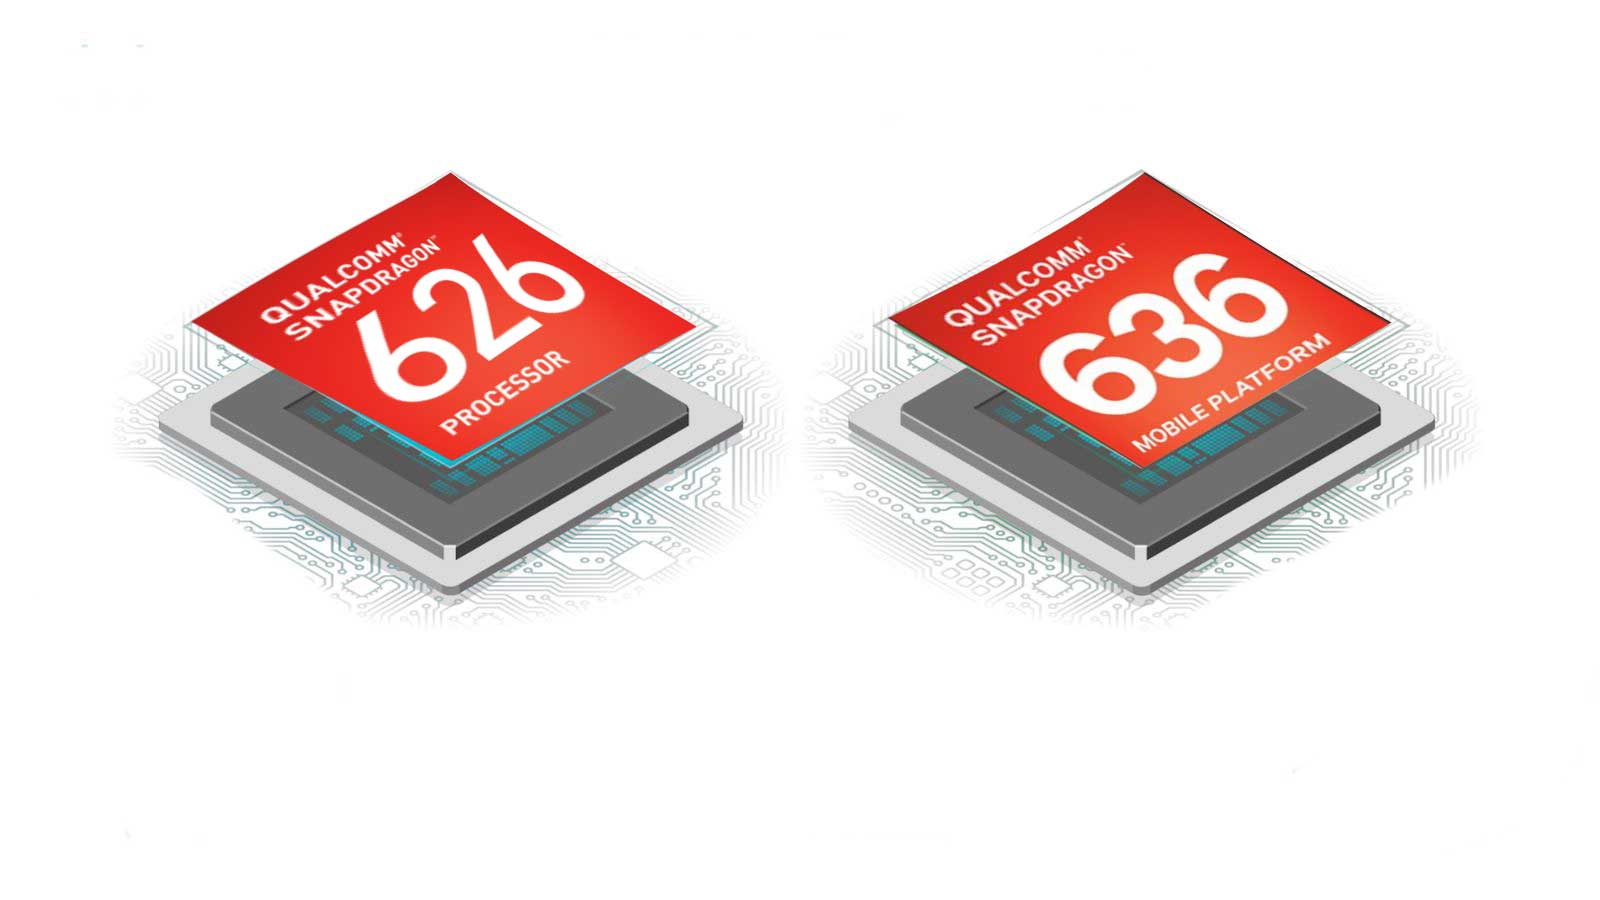 Snapdragon 636 vs 626 | Year 2018 chip vs 2016